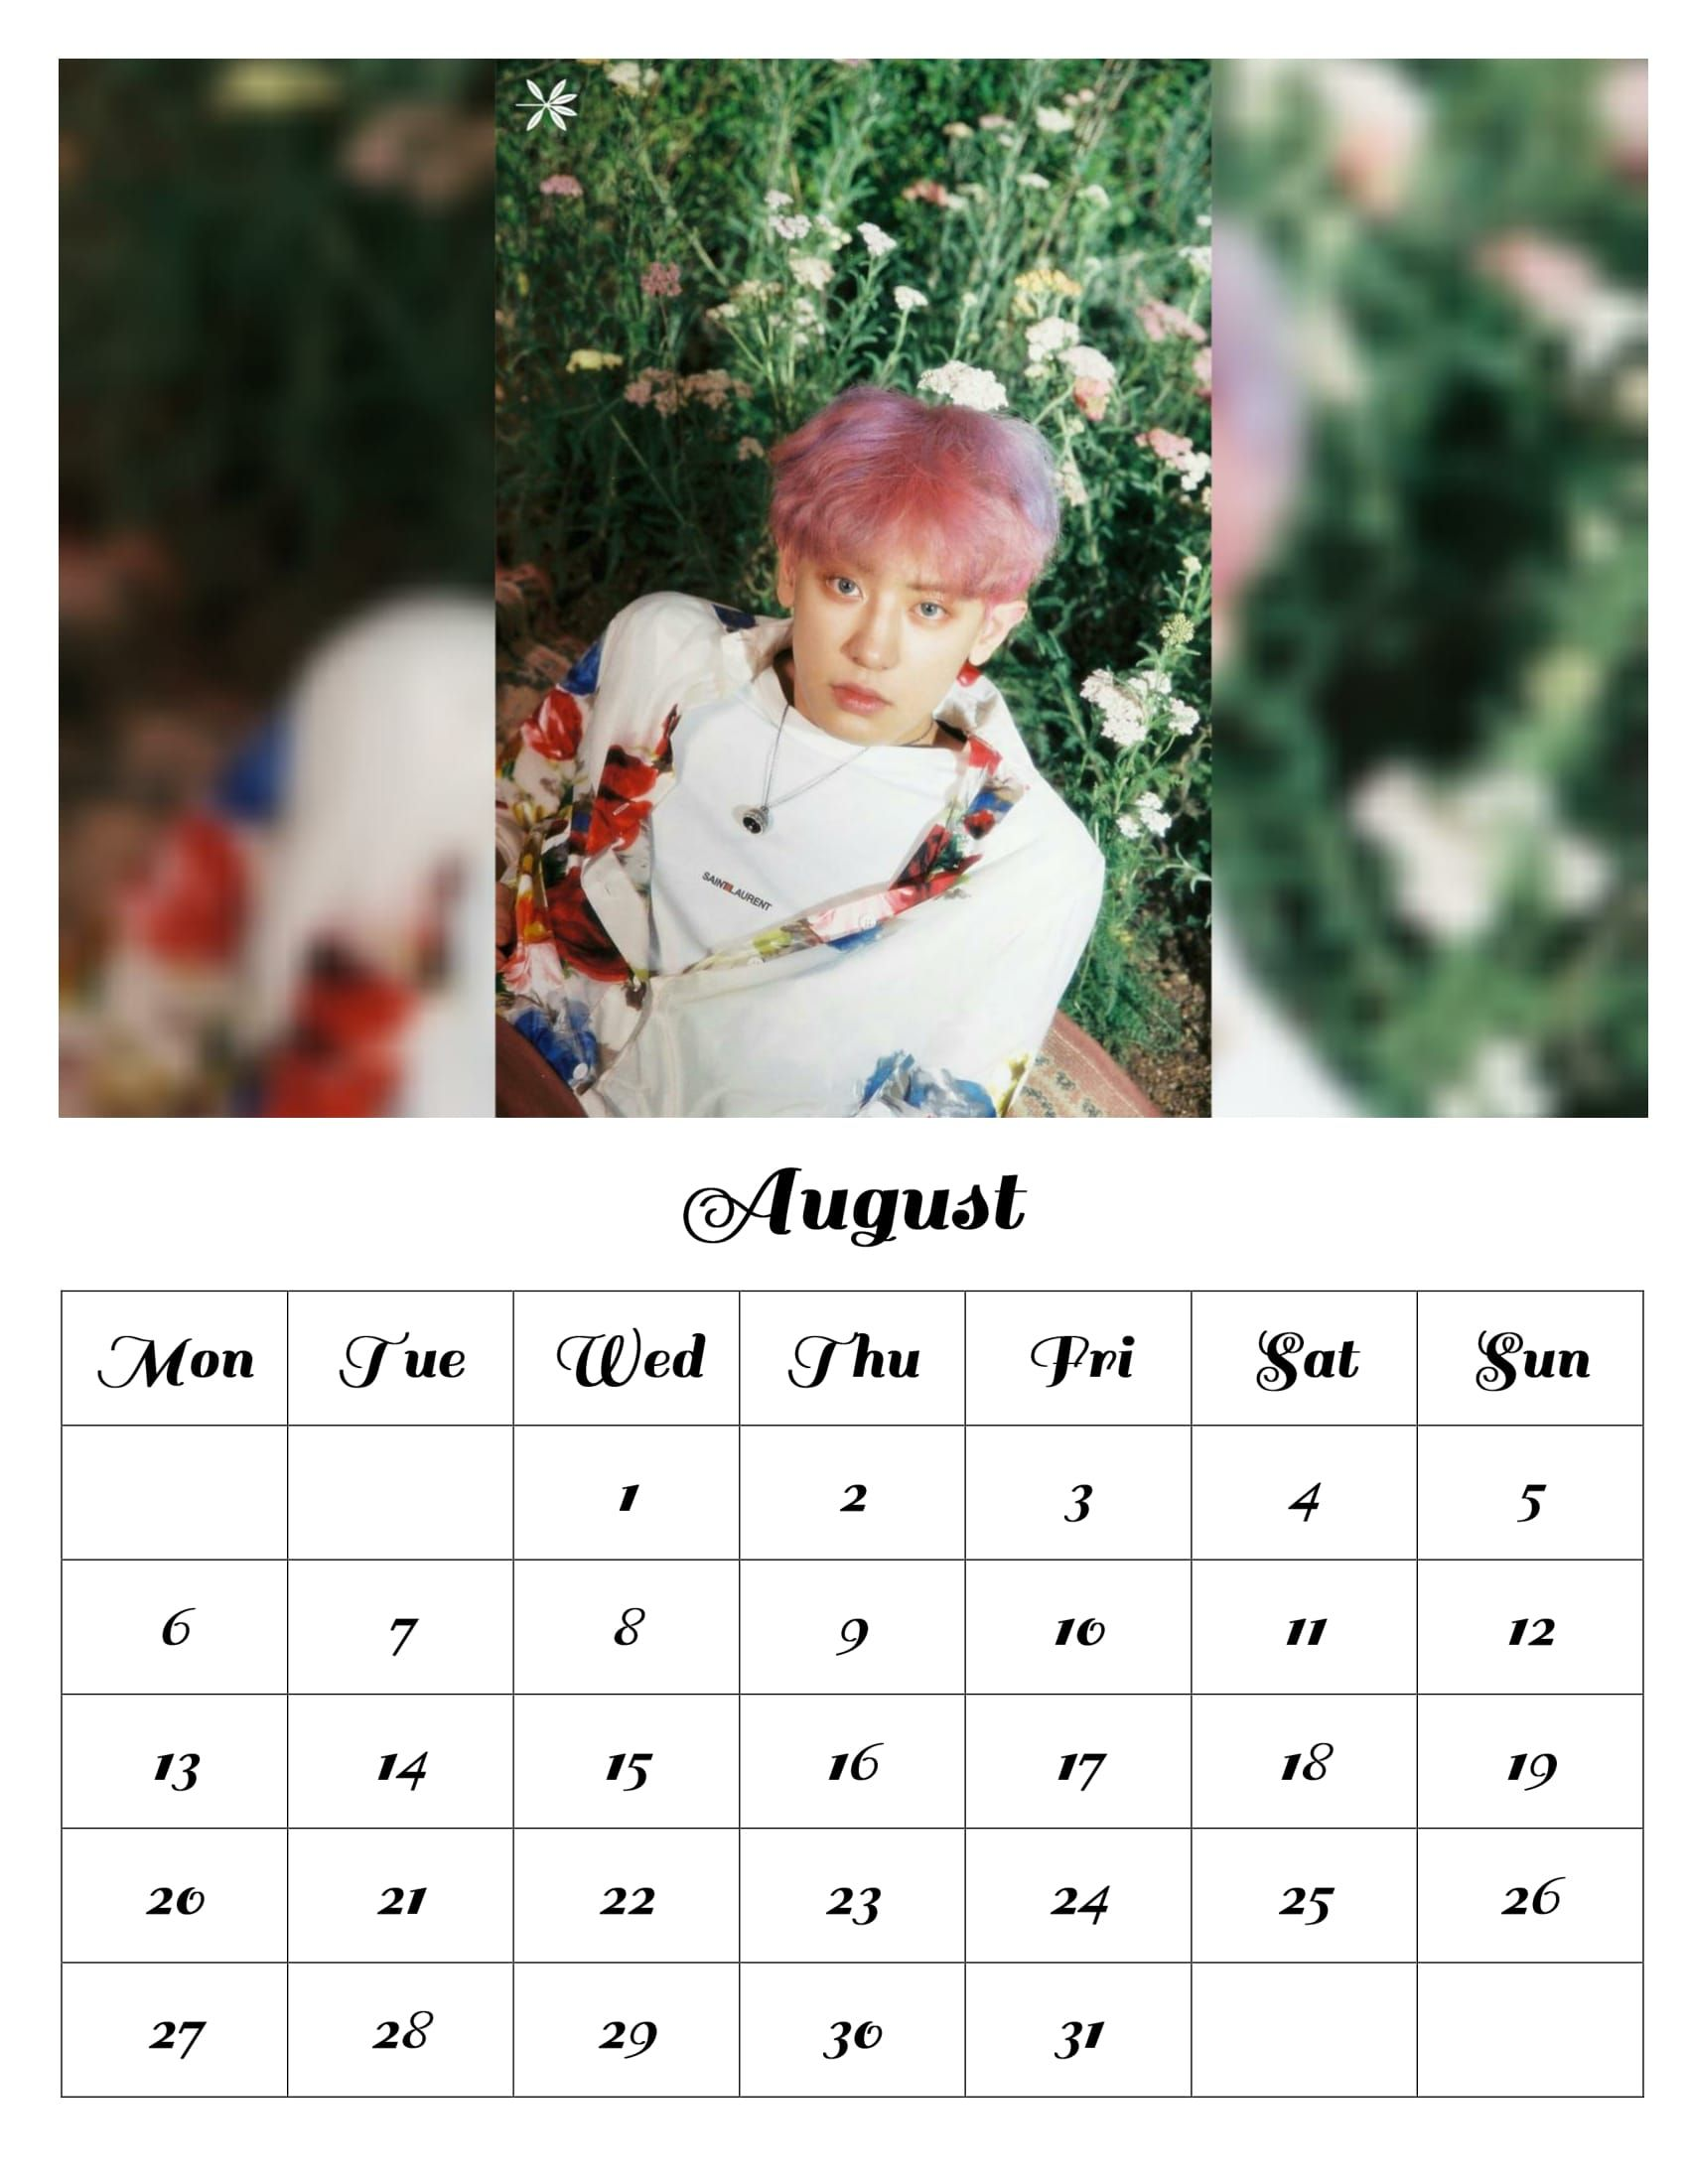 Apparel Accessories K-pop New Sehun Exo Sehun Surrounding Small Desktop Calendar 2018 Calendar Birthday Gift New Selected Material Men's Accessories